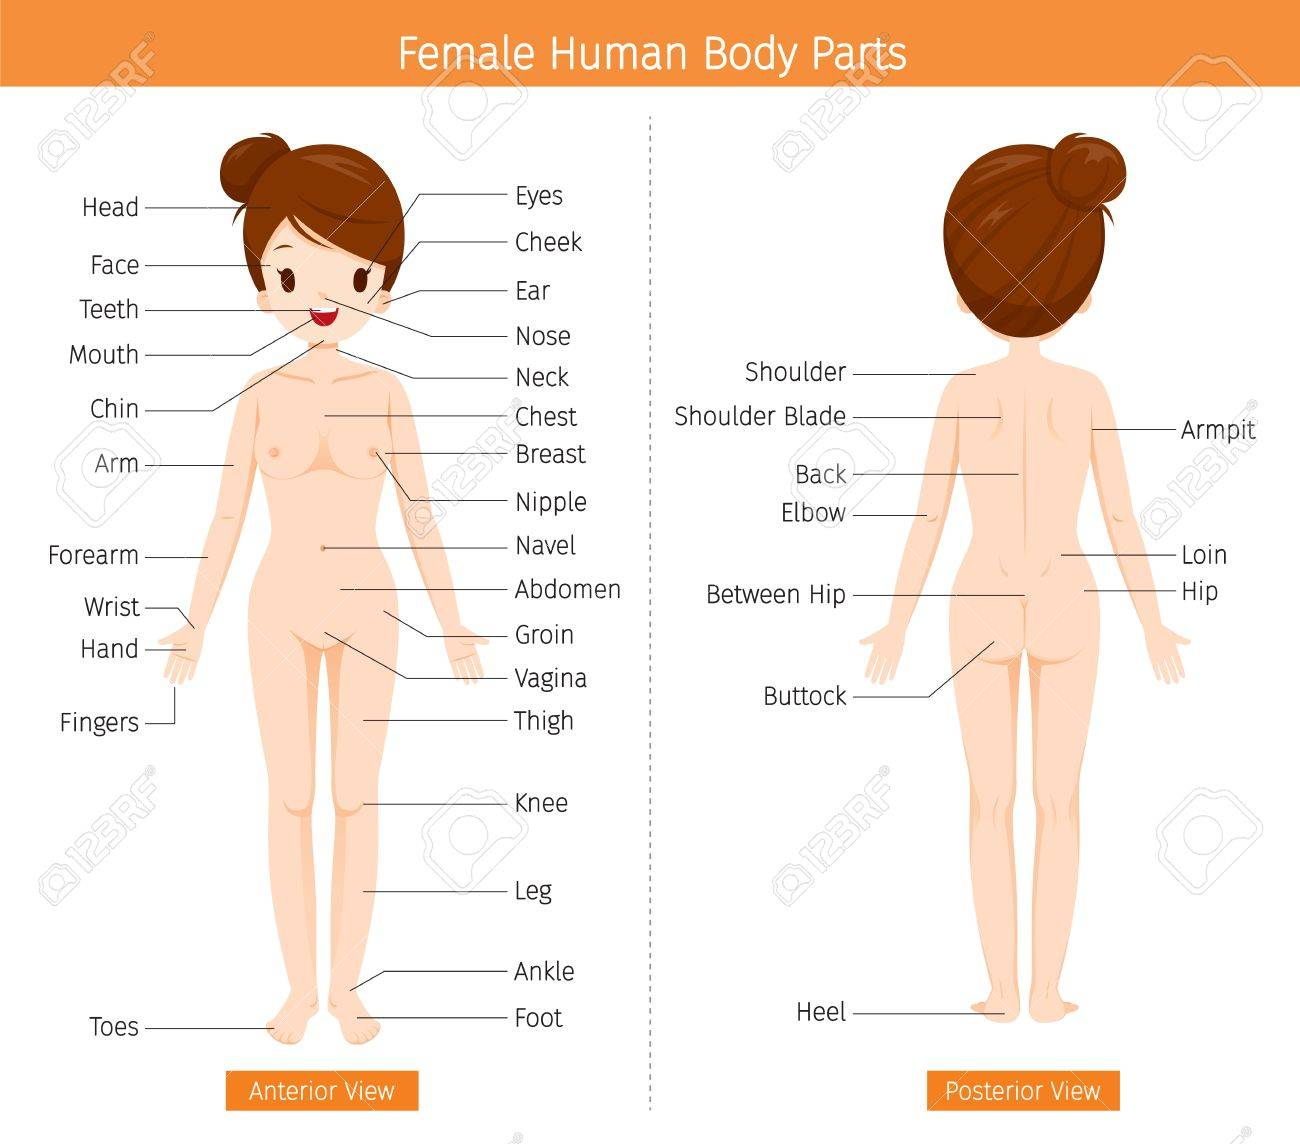 Female Human Anatomy External Organs Body Physiology Structure